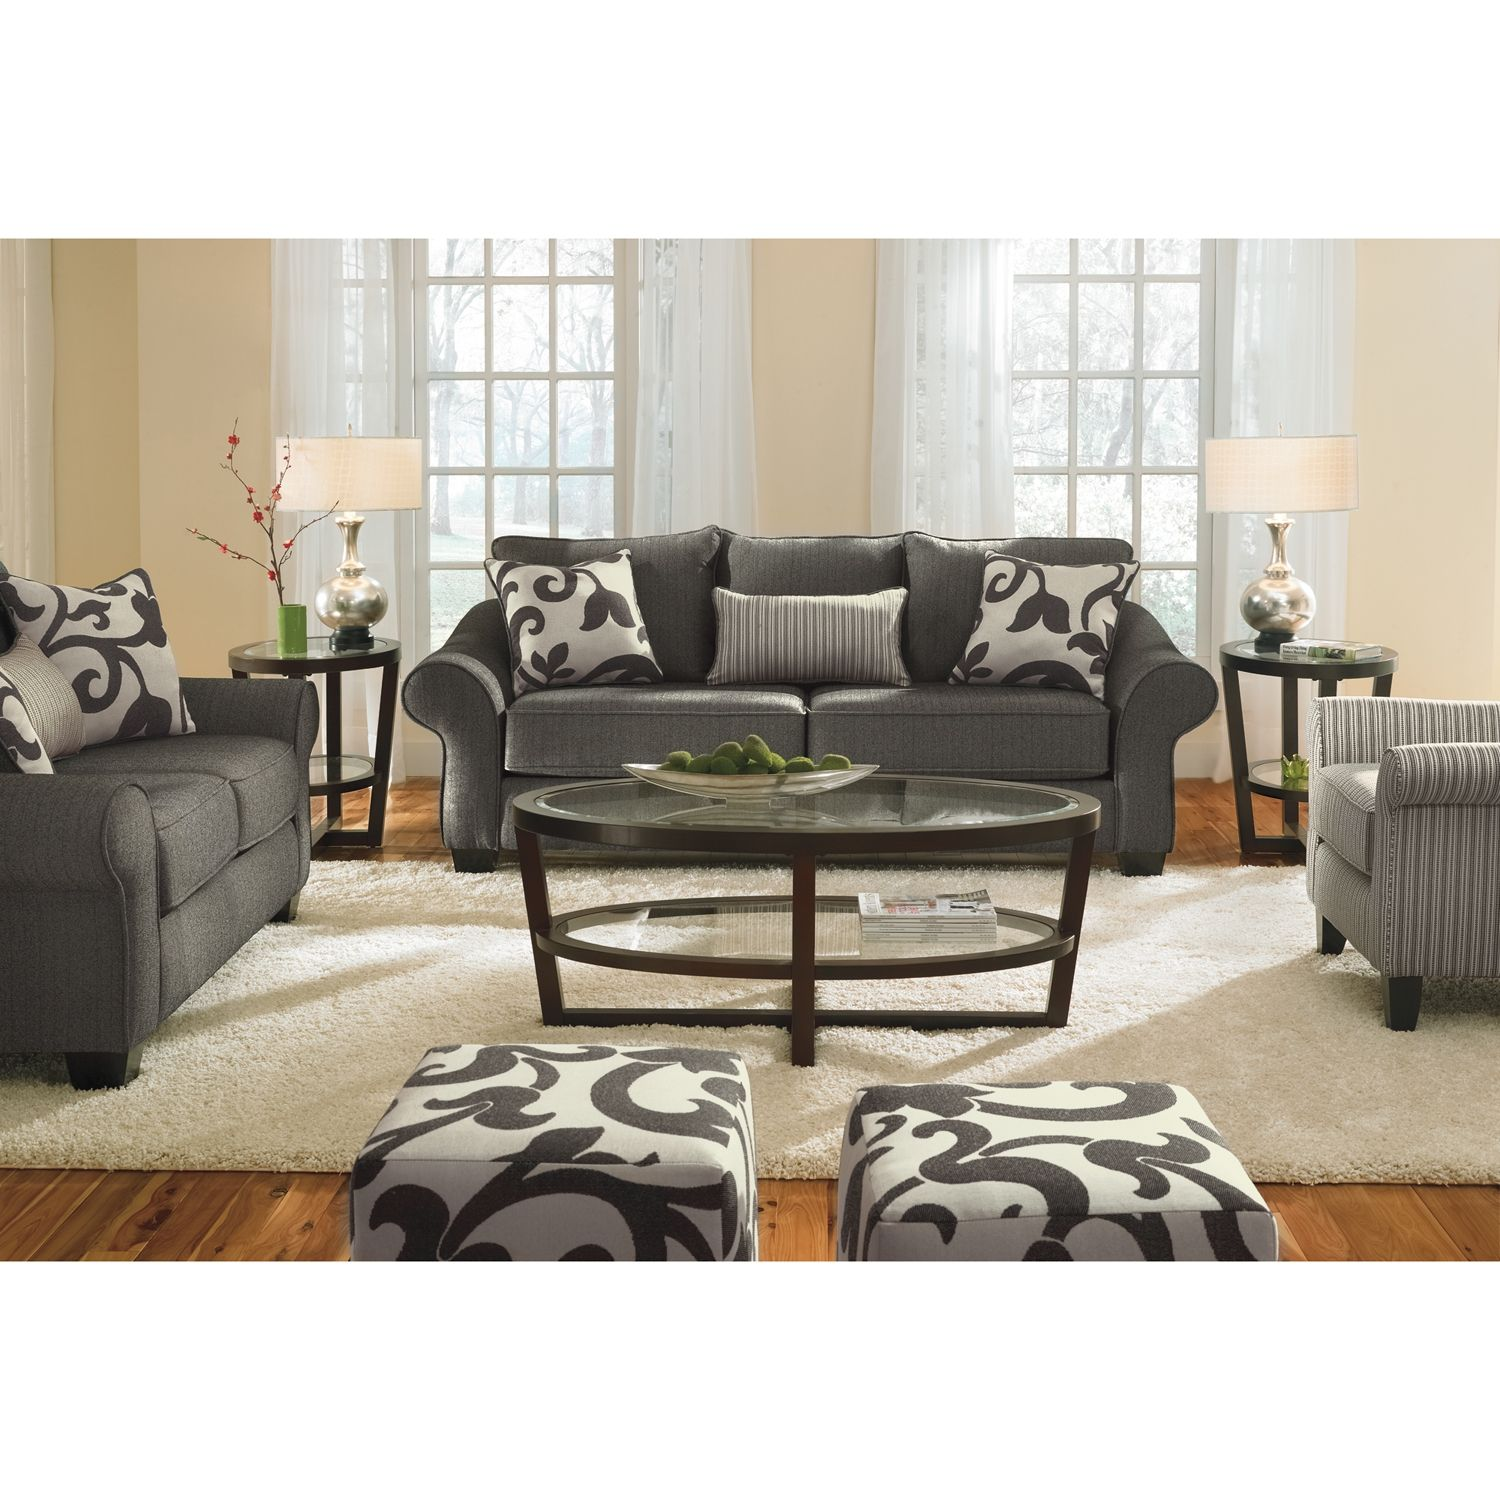 Colette Sofa Gray Upholstery Herringbone and City furniture